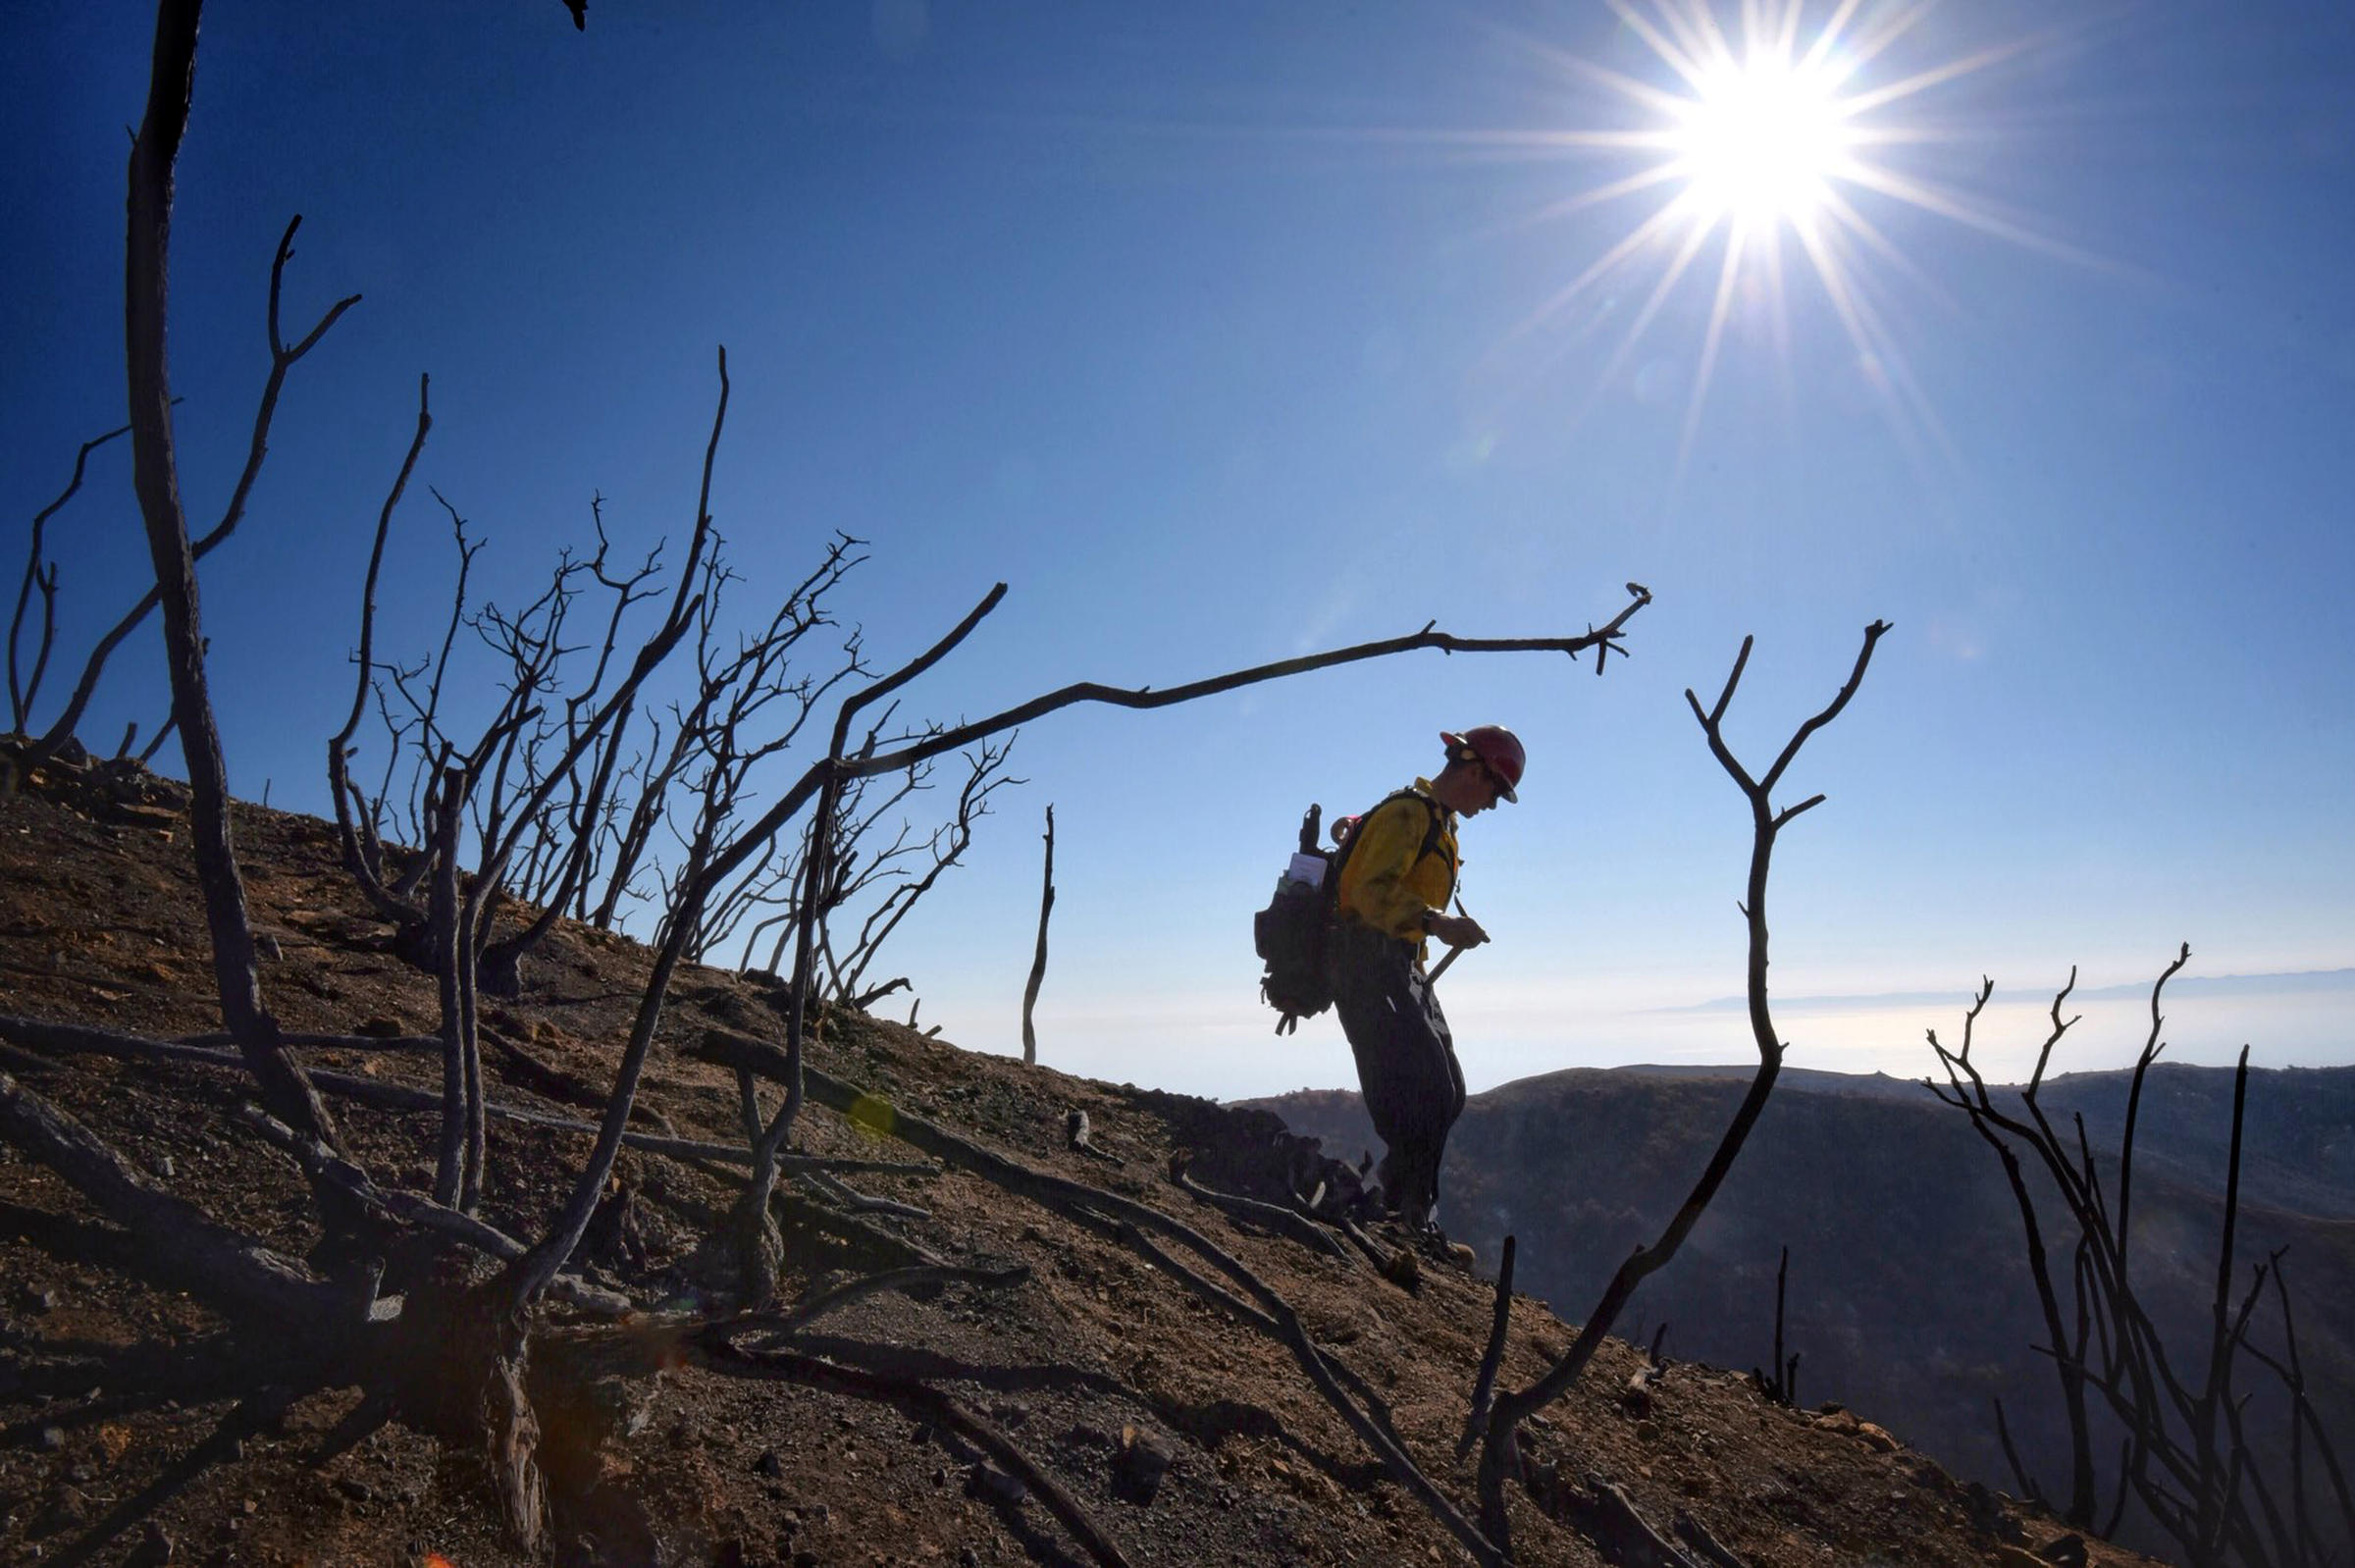 Thomas Fire, California's Largest On Record, Is Now 100 Percent Contained